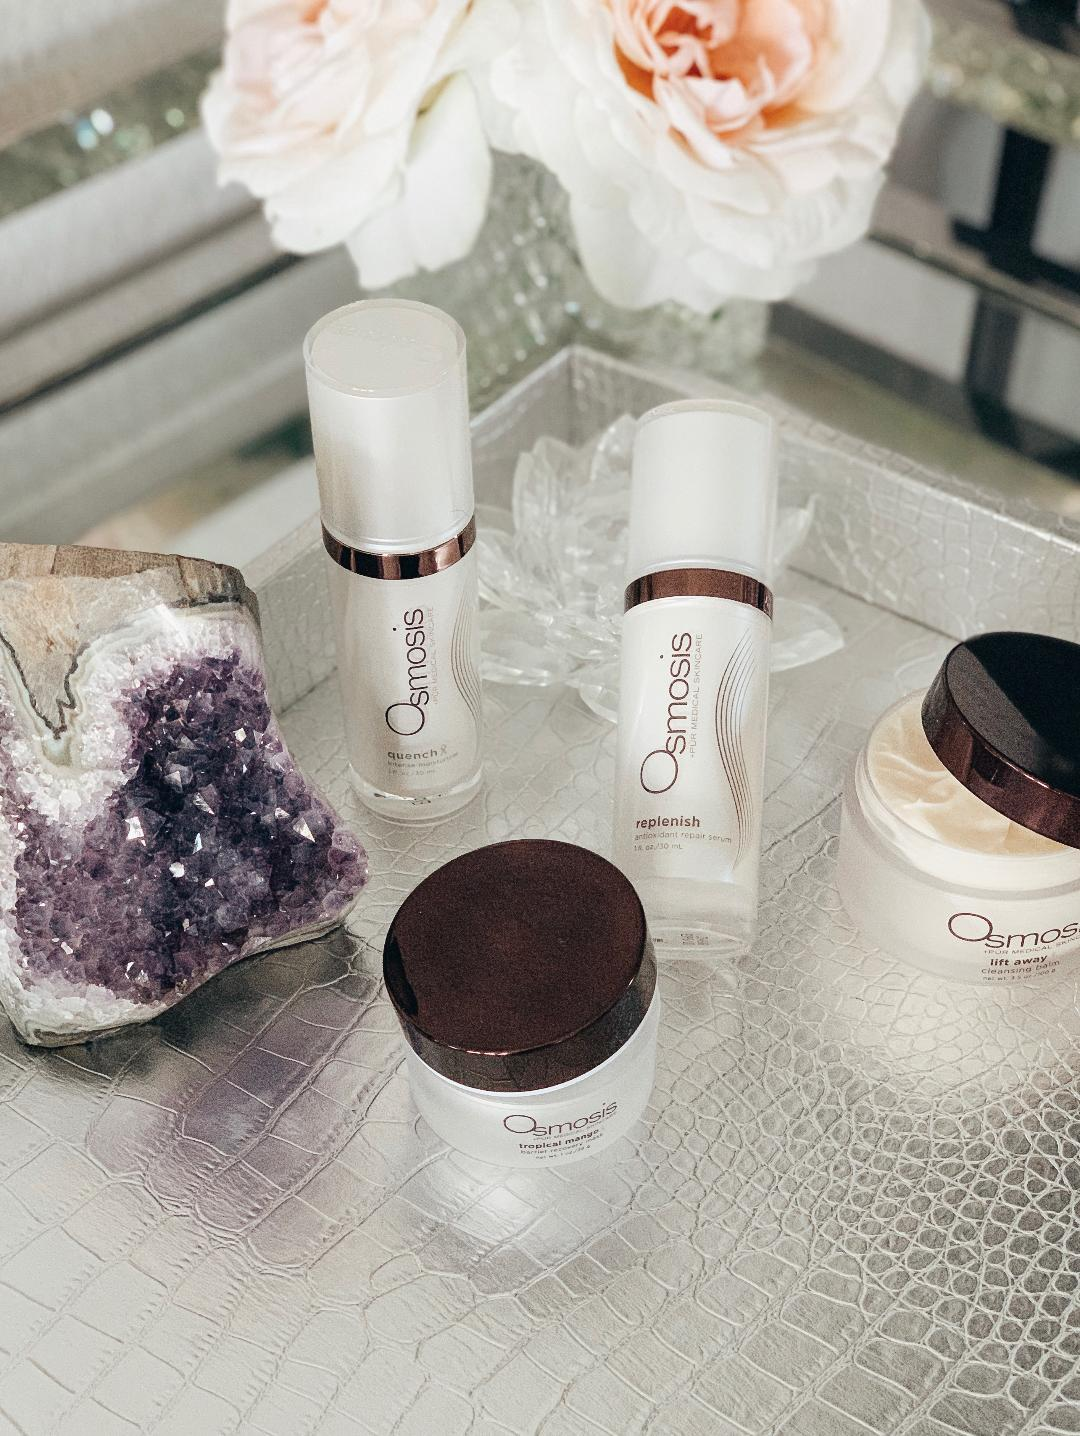 Osmosis Clean Beauty Skincare